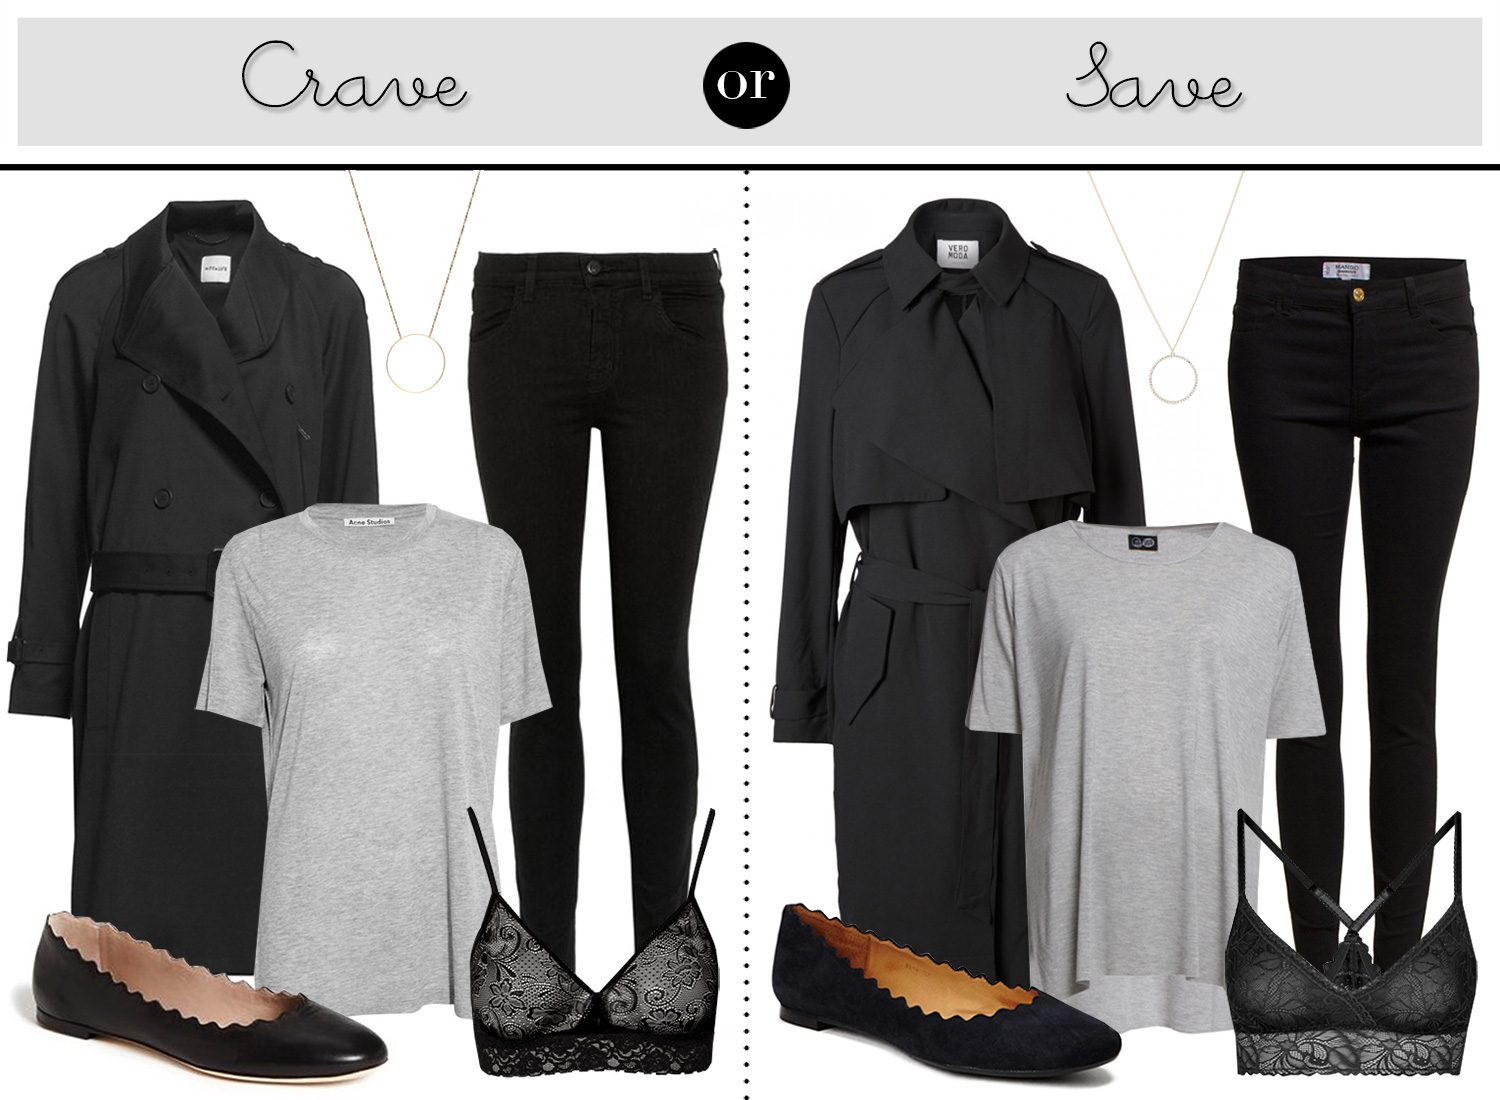 crave-or-save,-expensive-versus-cheap,-fashion,-mode,-modeblog@2x